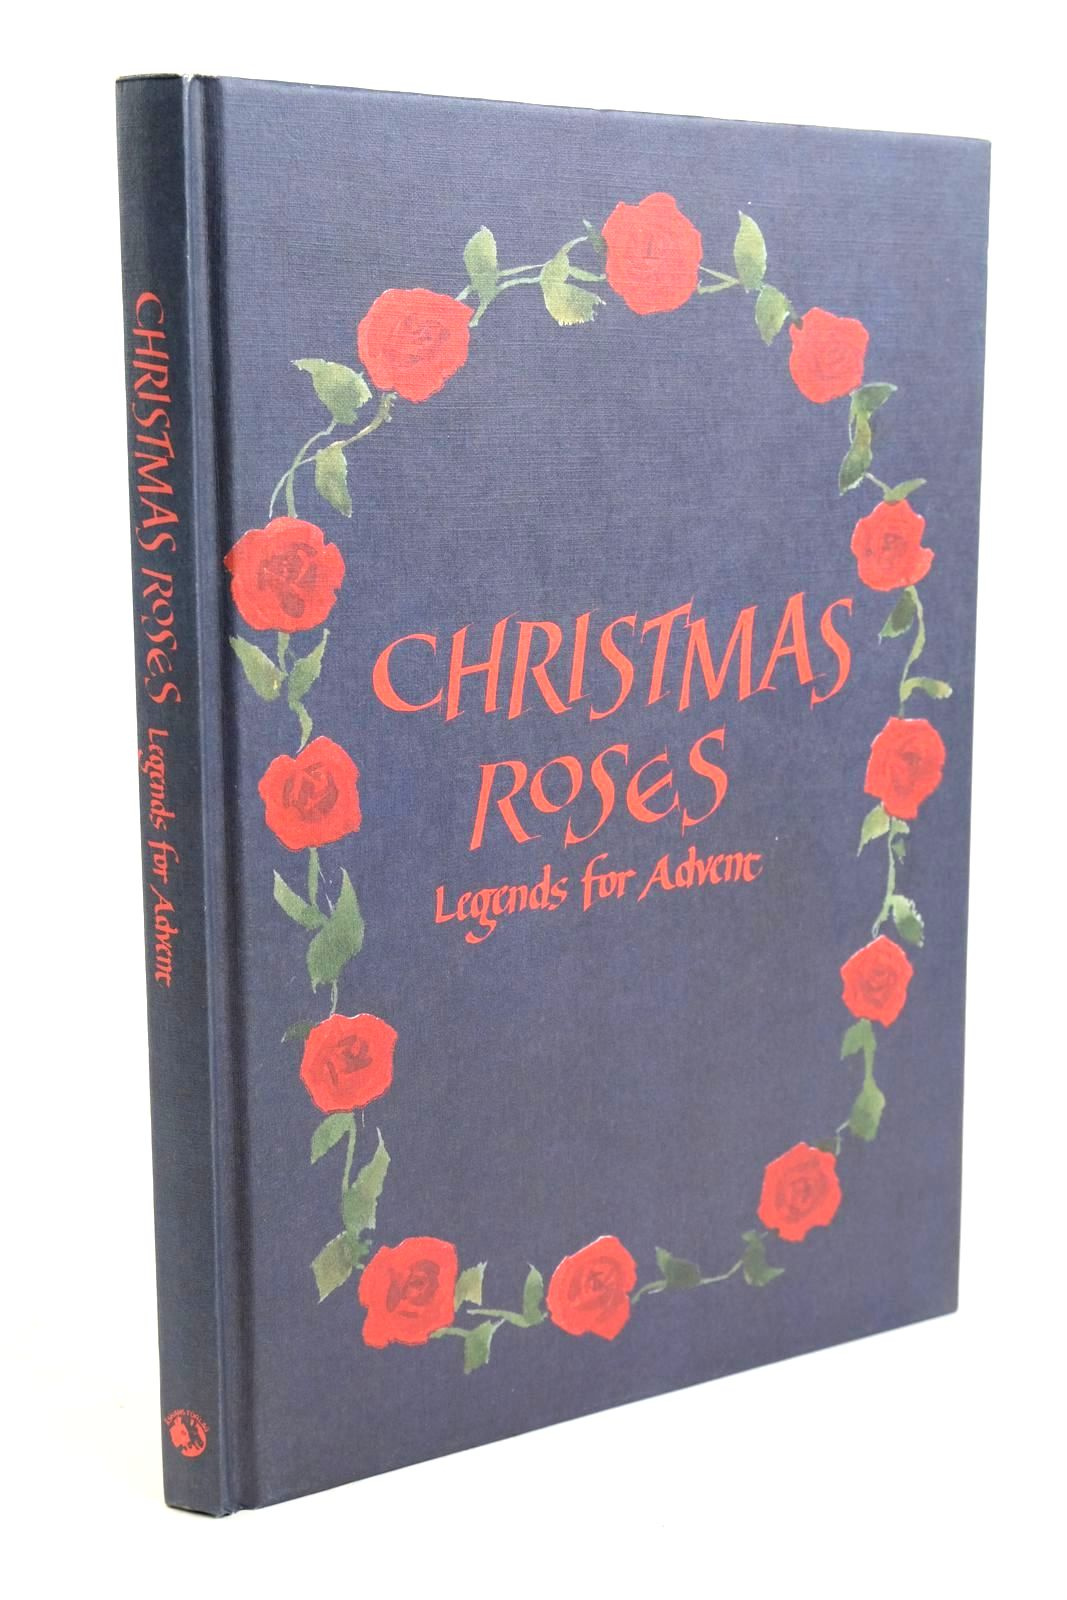 Photo of CHRISTMAS ROSES - LEGENDS FOR ADVENT- Stock Number: 1321612